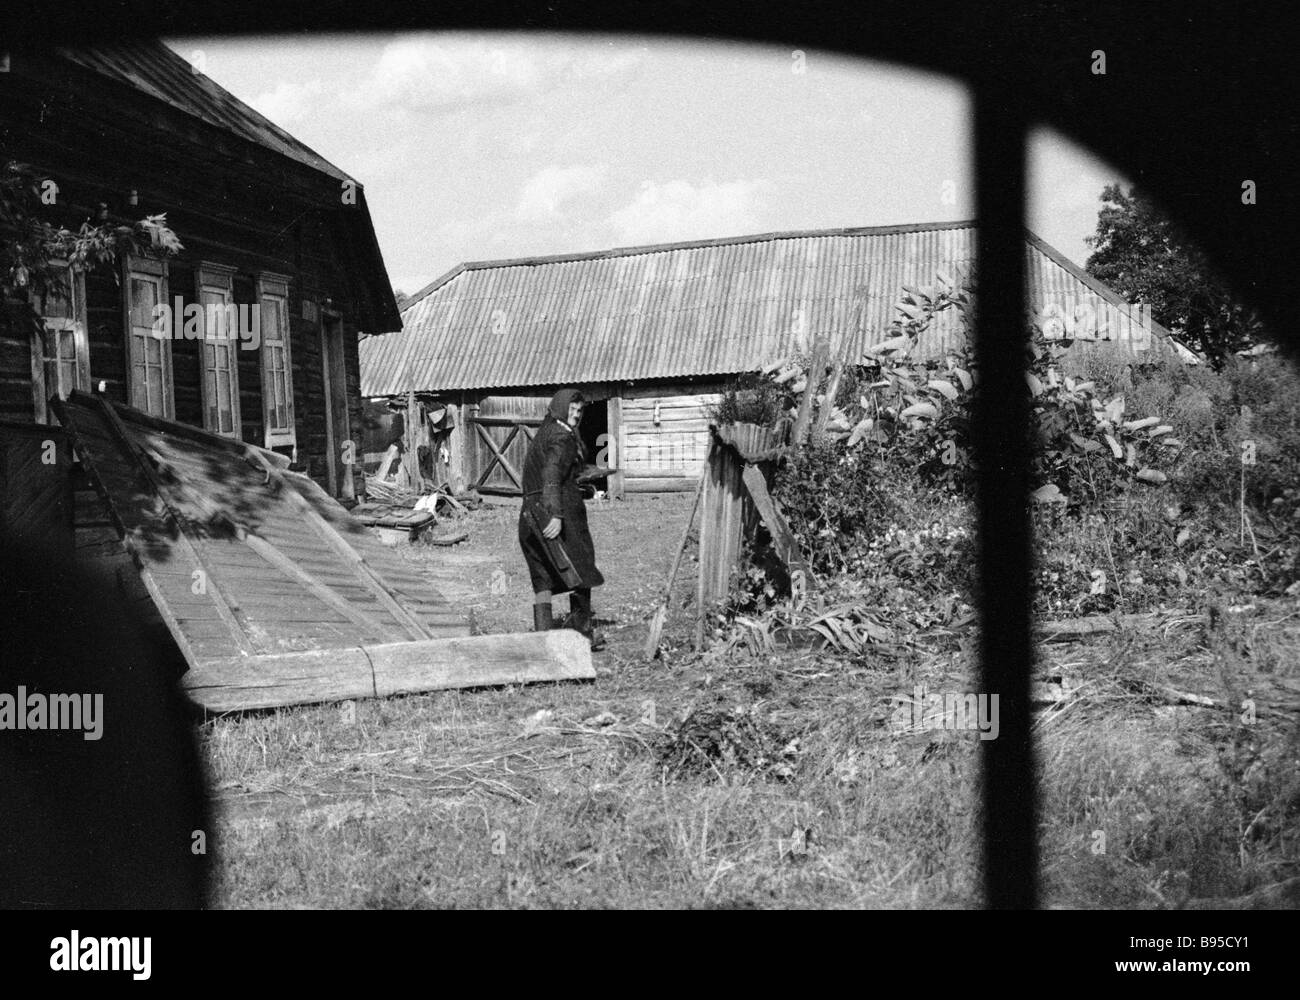 A woman from Braginsky district affected by the Chernobyl disaster refused to leave her home within the contamination - Stock Image